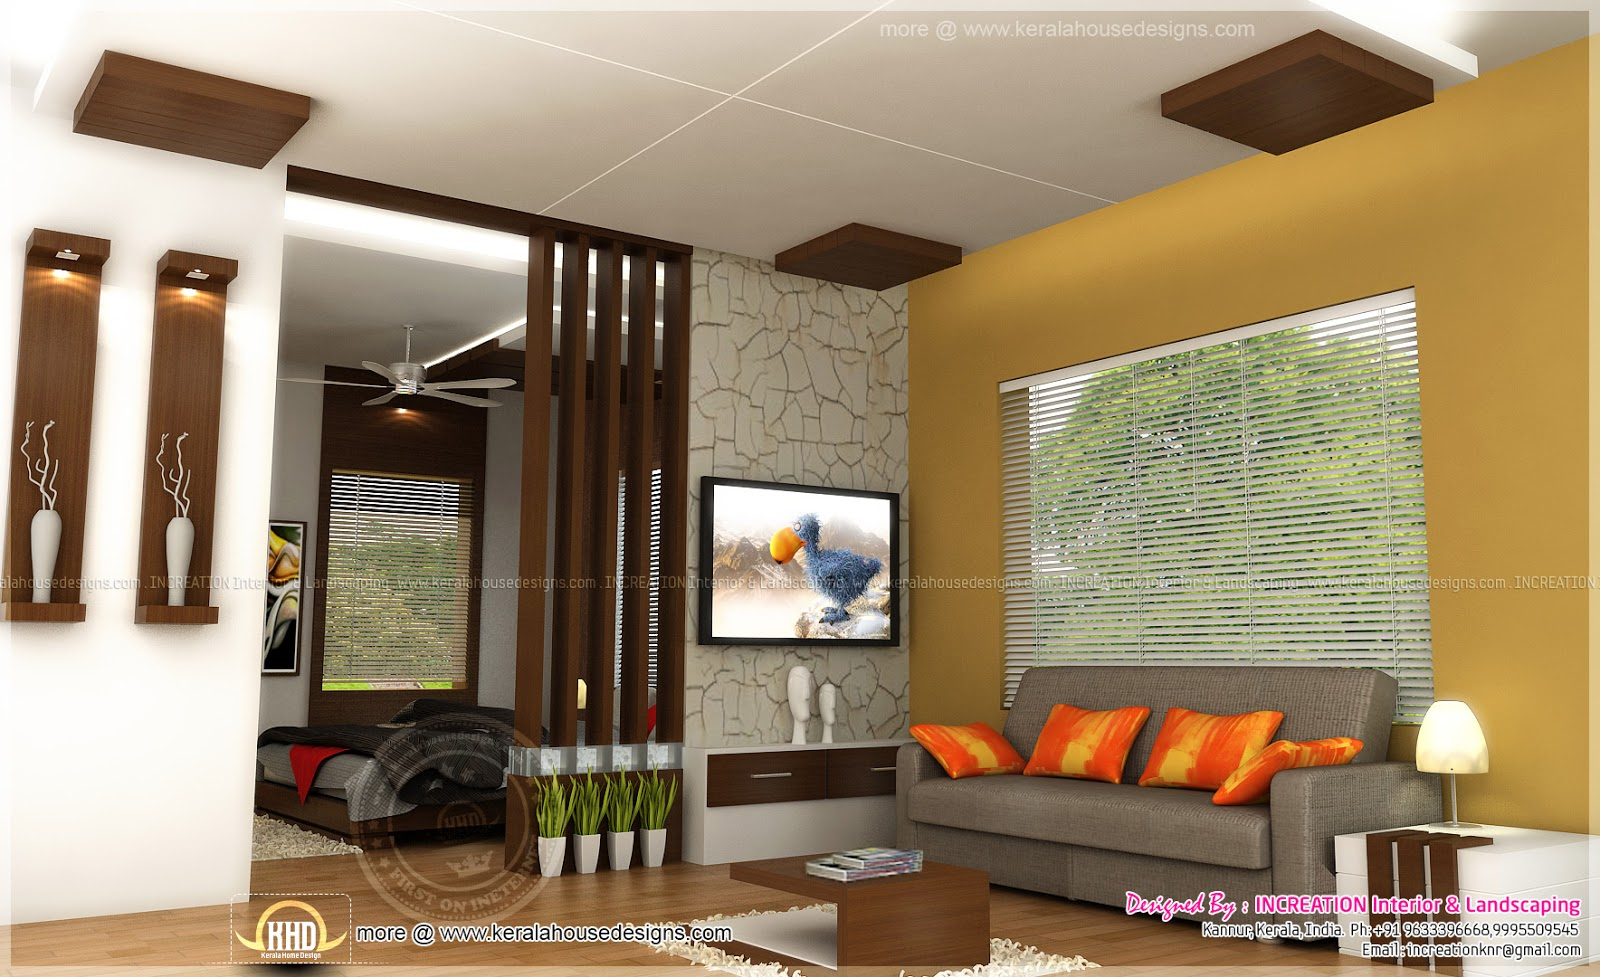 Interior designs from kannur kerala home kerala plans for Living room interior design india